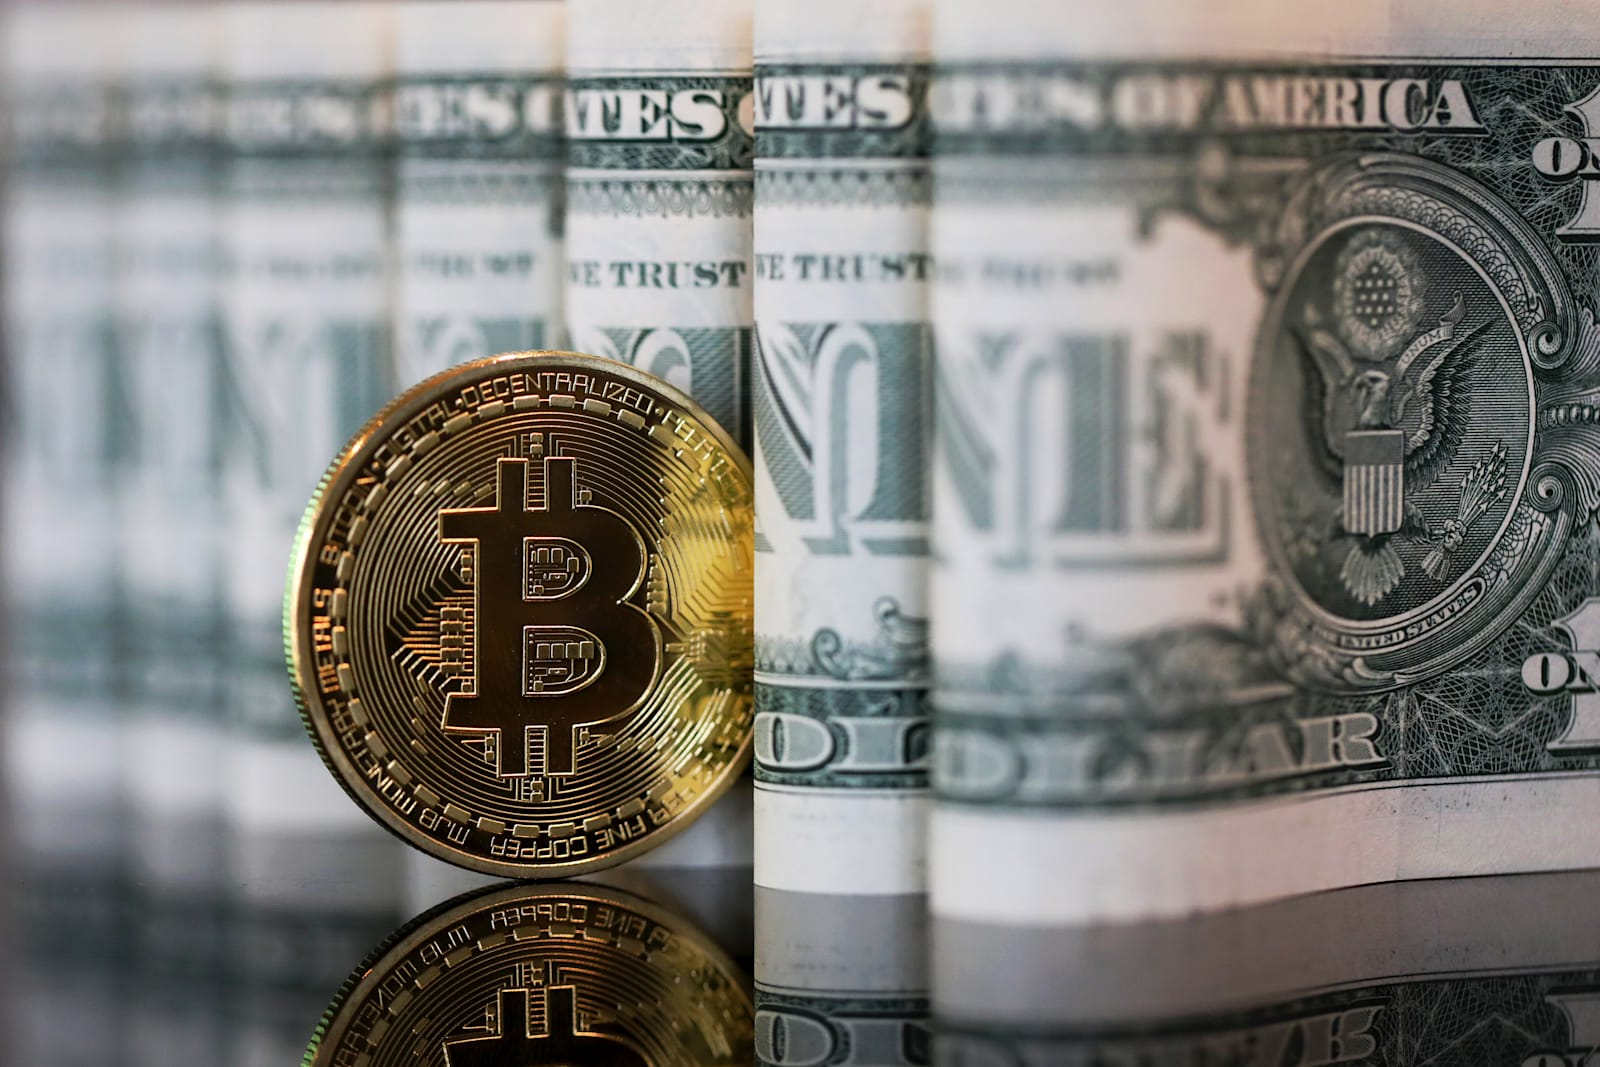 SEC rejects Winklevoss twins' plan to trade Bitcoin as stock